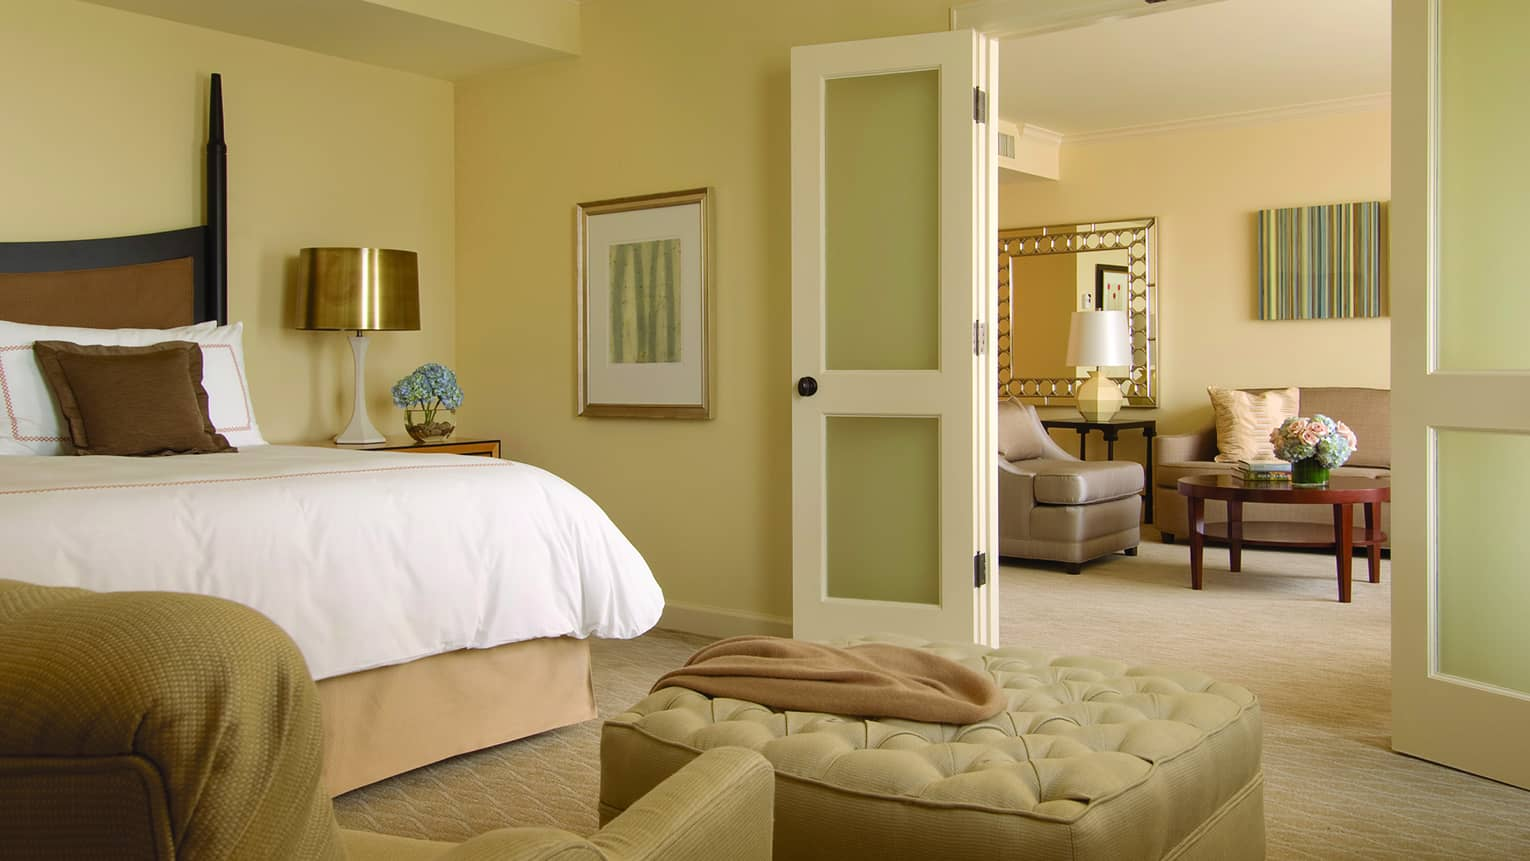 Executive suite bedroom with bed, large beige ottoman, French doors opening to living area